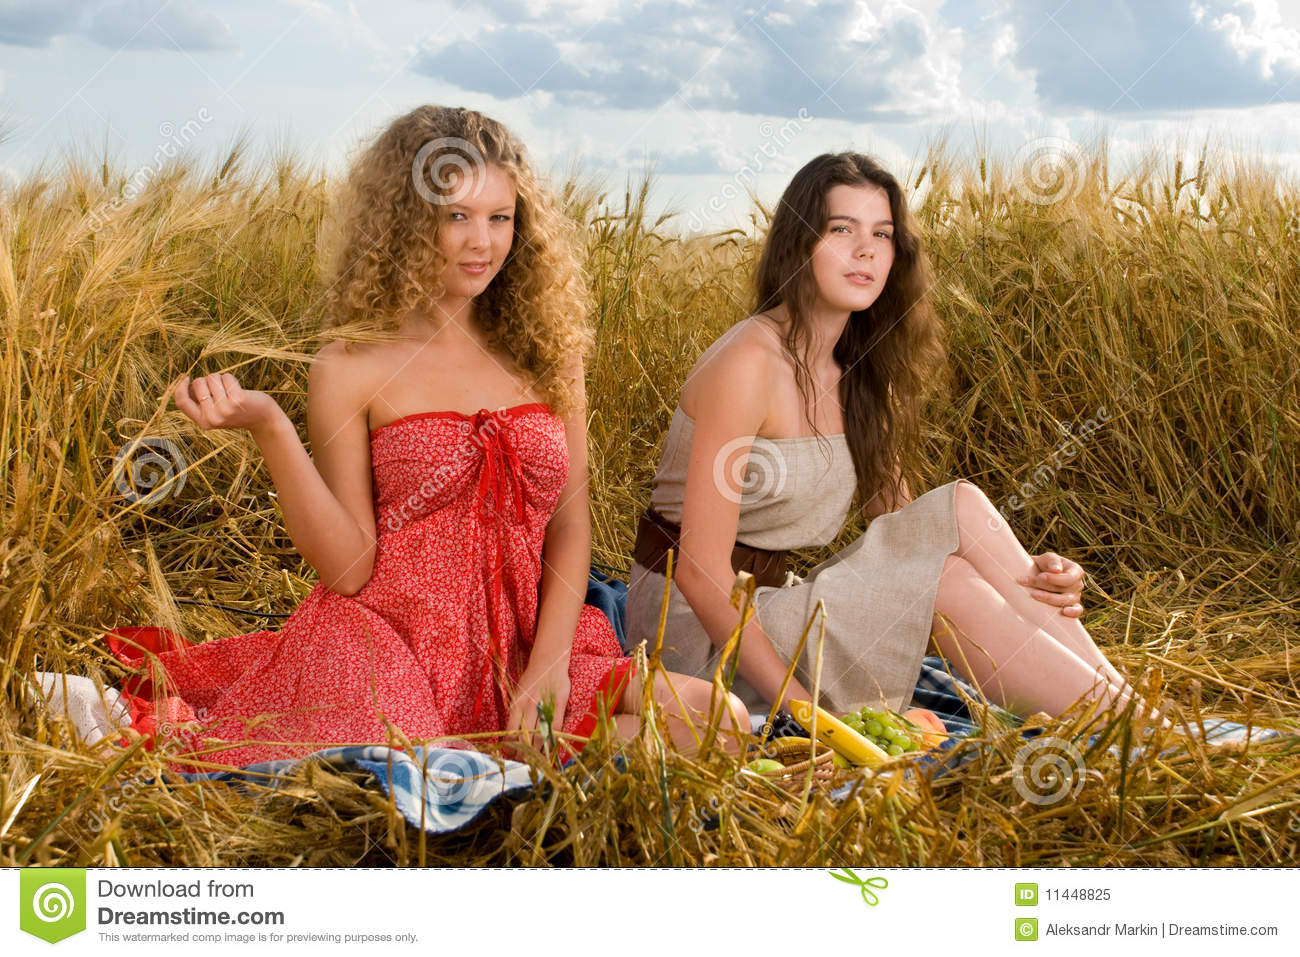 Two Girls On Picnic In Wheat Field Royalty Free Stock Photo Image 11448825